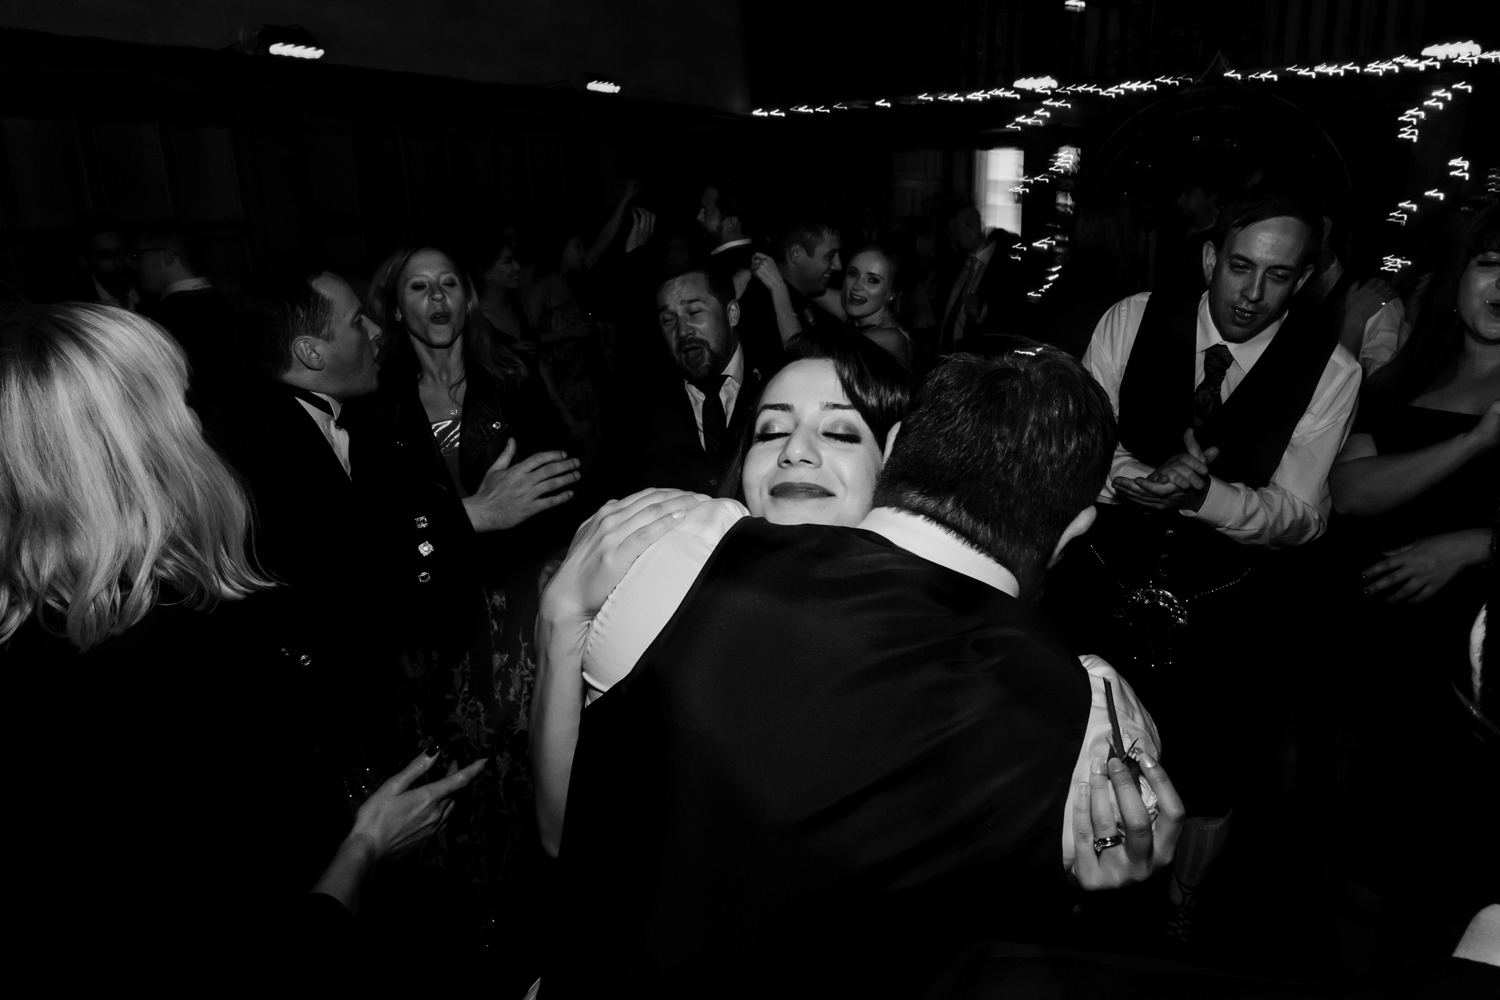 Bride and groom hug on the dance floor.